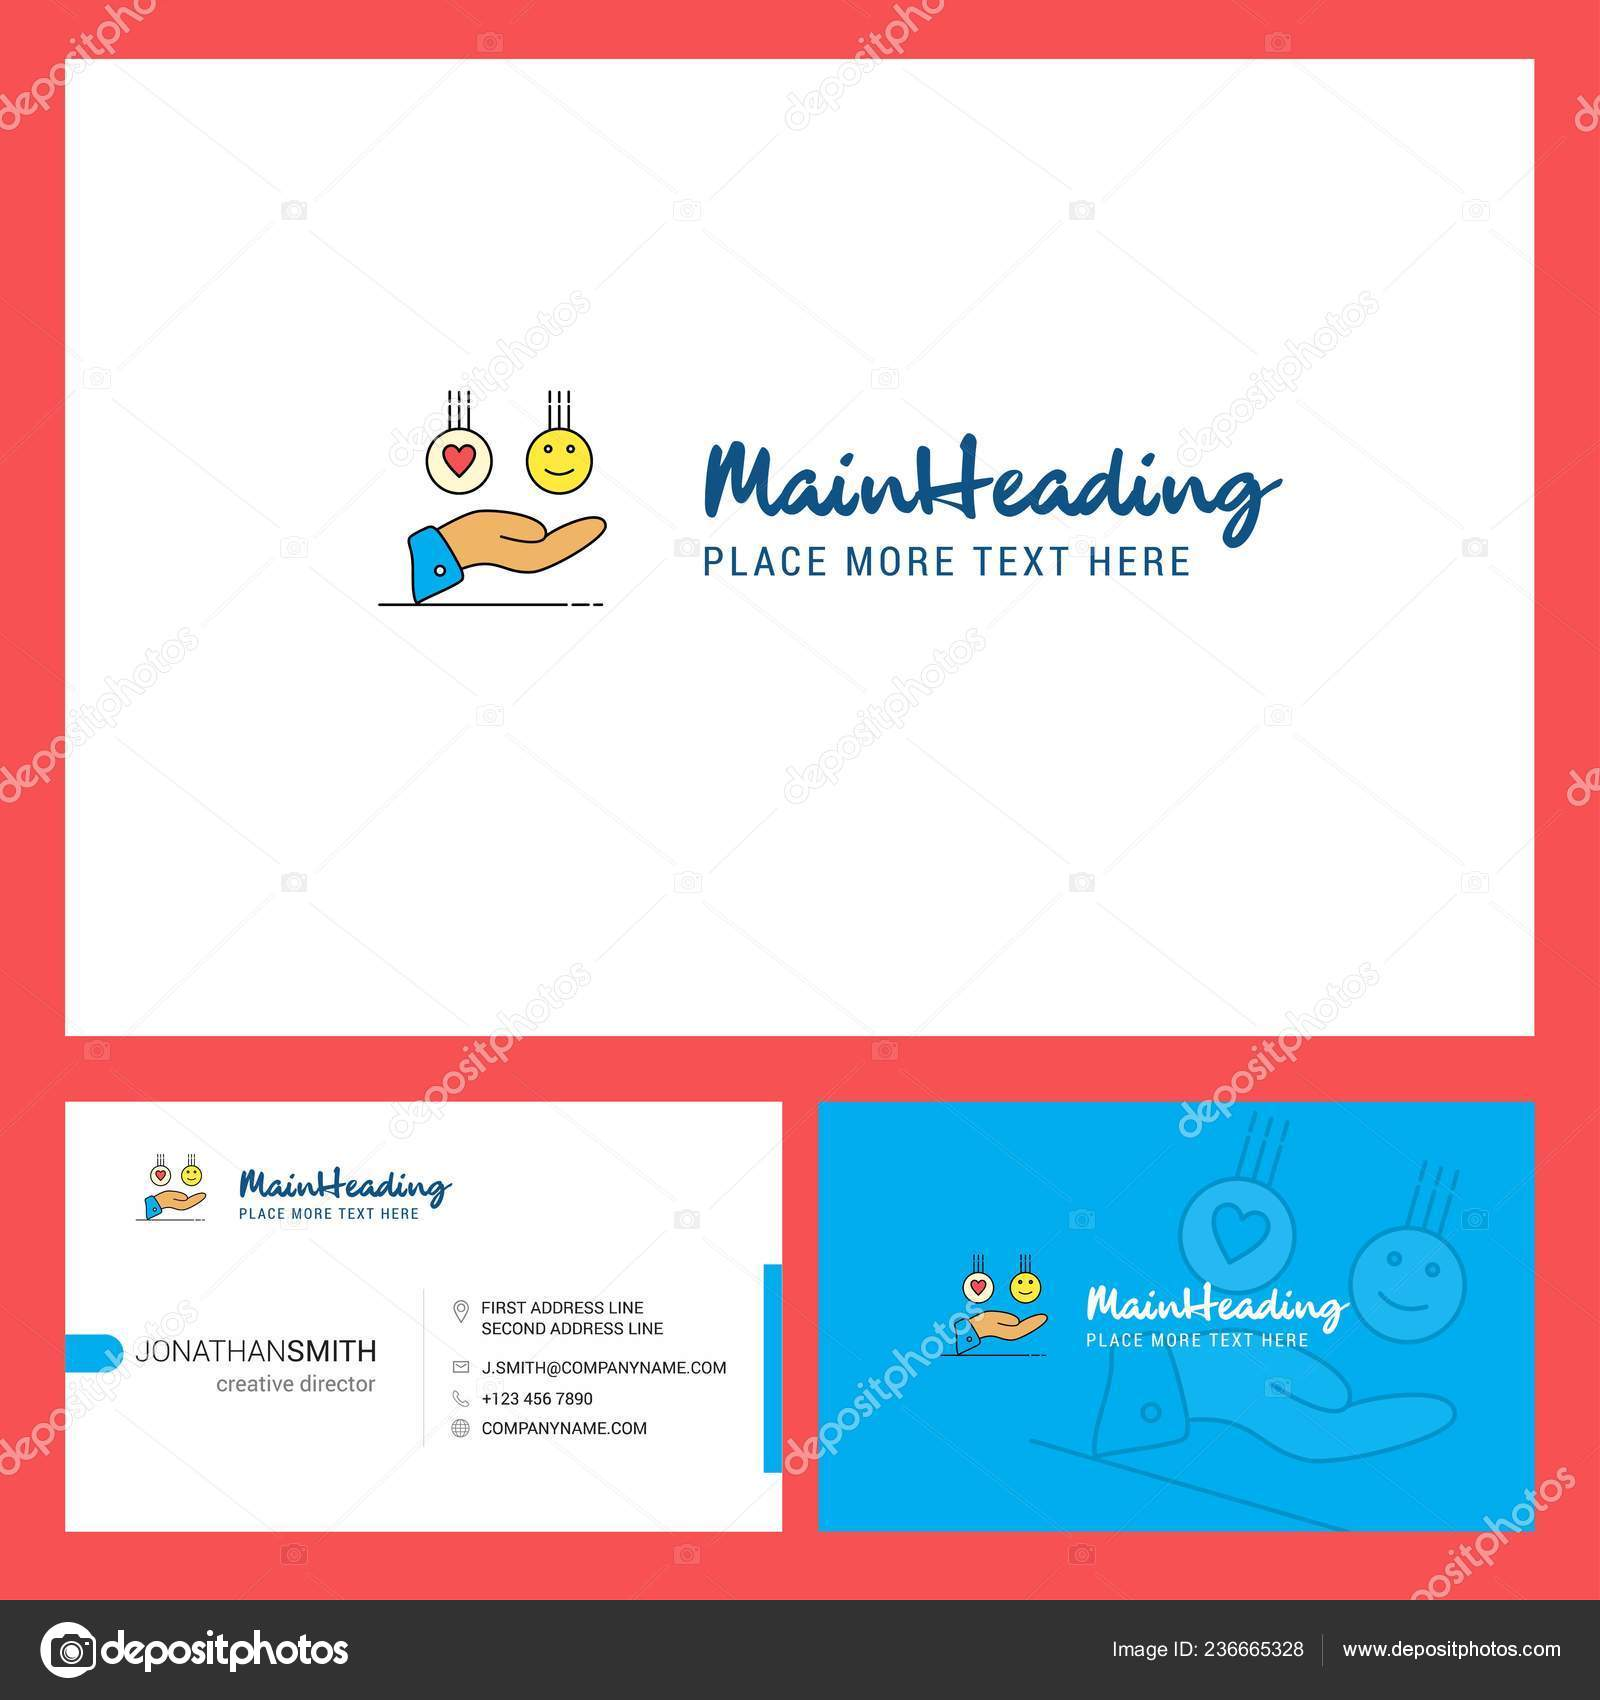 Creation De Logo Avec Slogan Avant Et Arriere Modele Carte Visite Vector Design Creatif Illustration Stock